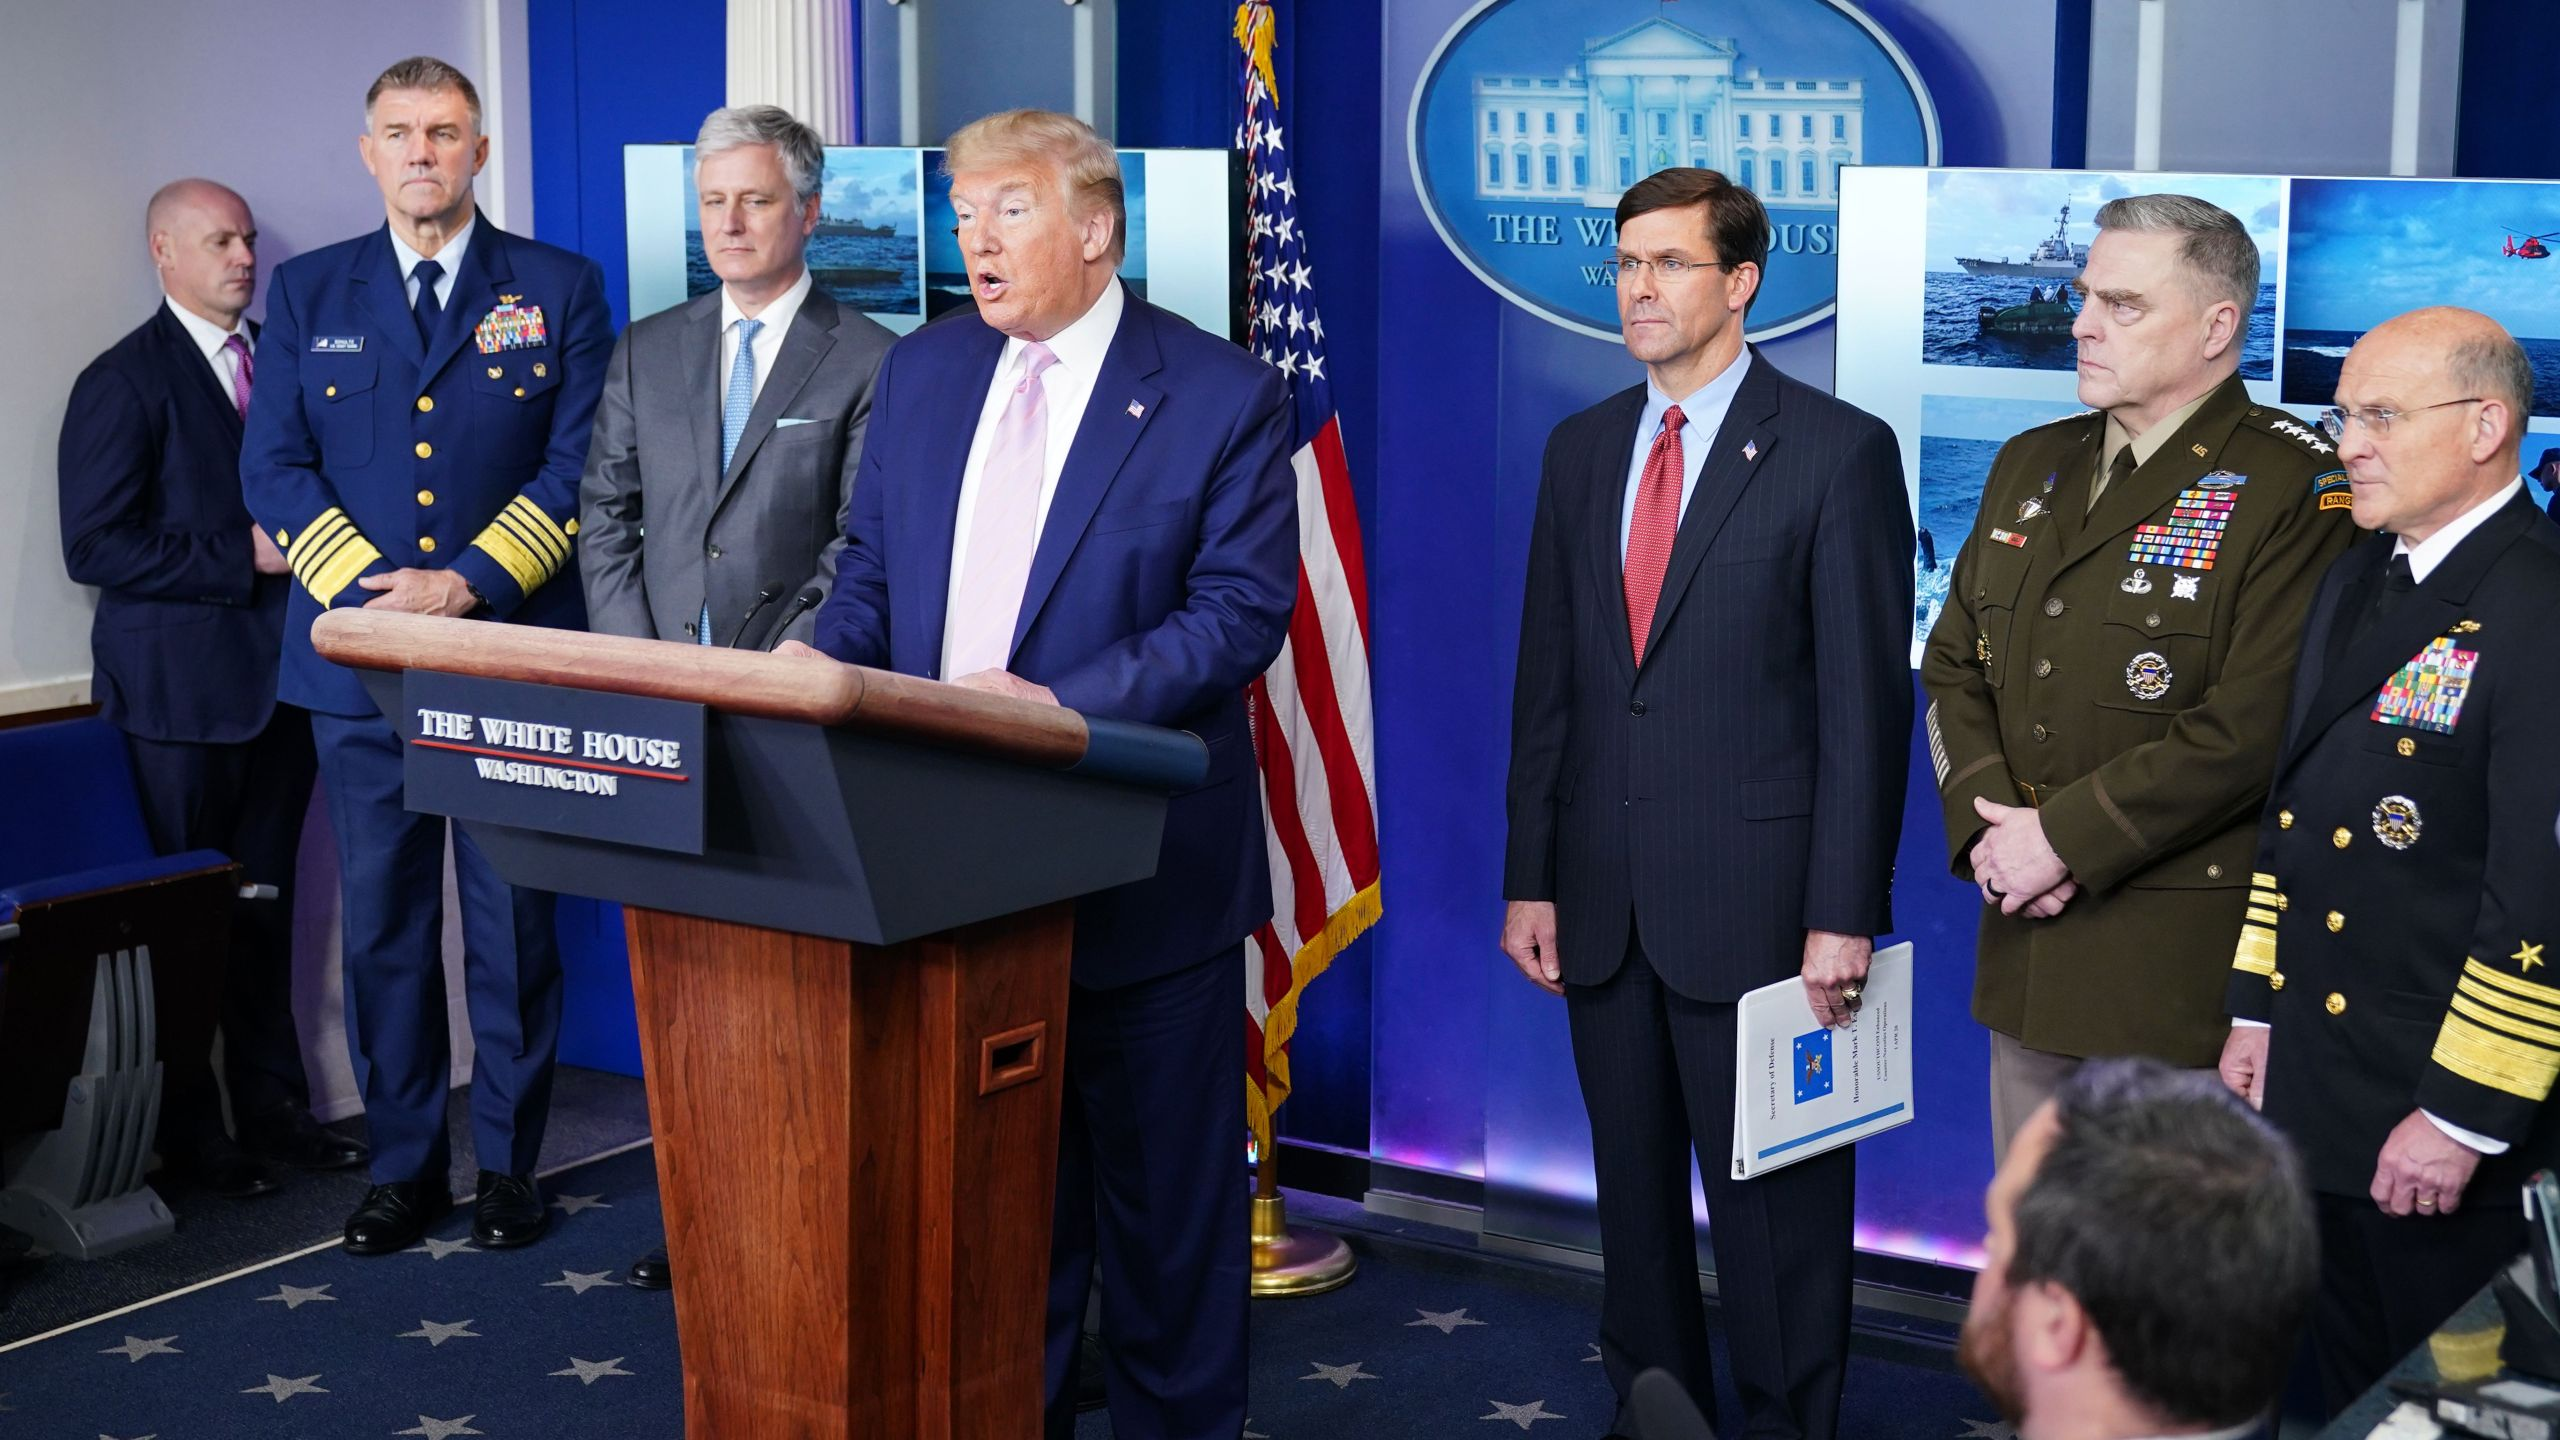 President Donald Trump speaks during the daily briefing on the novel coronavirus, COVID-19, in the Brady Briefing Room at the White House on April 1, 2020. (MANDEL NGAN/AFP via Getty Images)